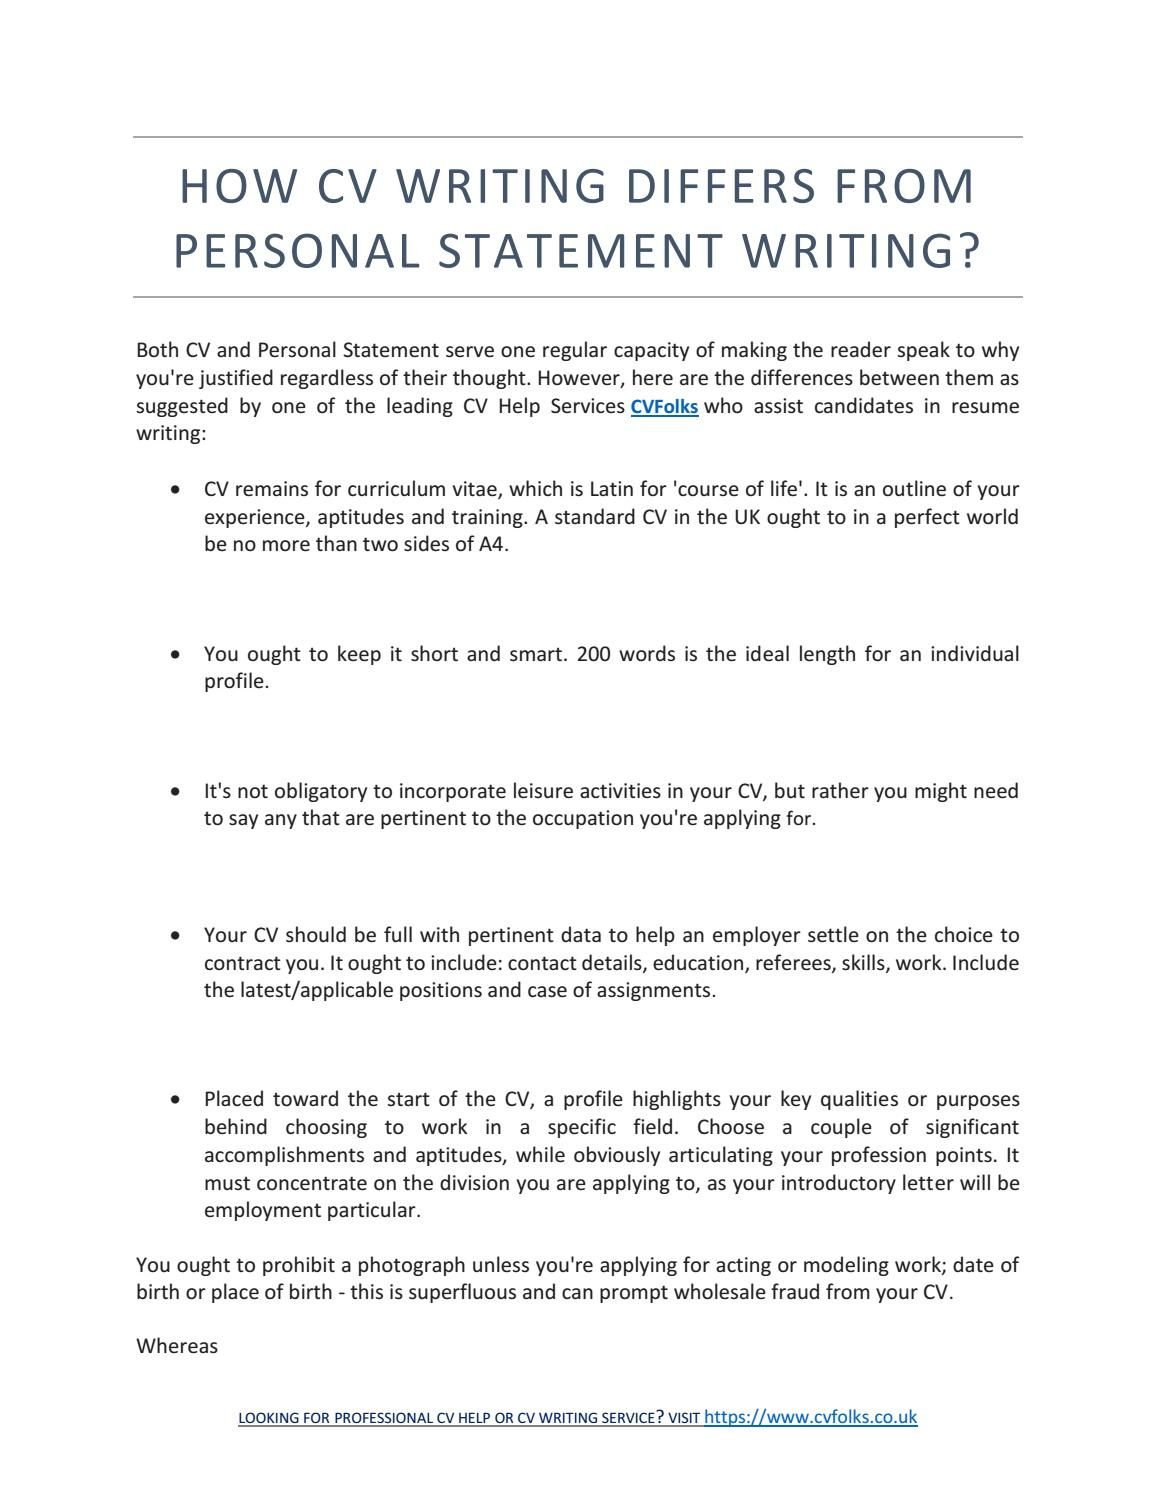 how cv writing differs from personal statement writing